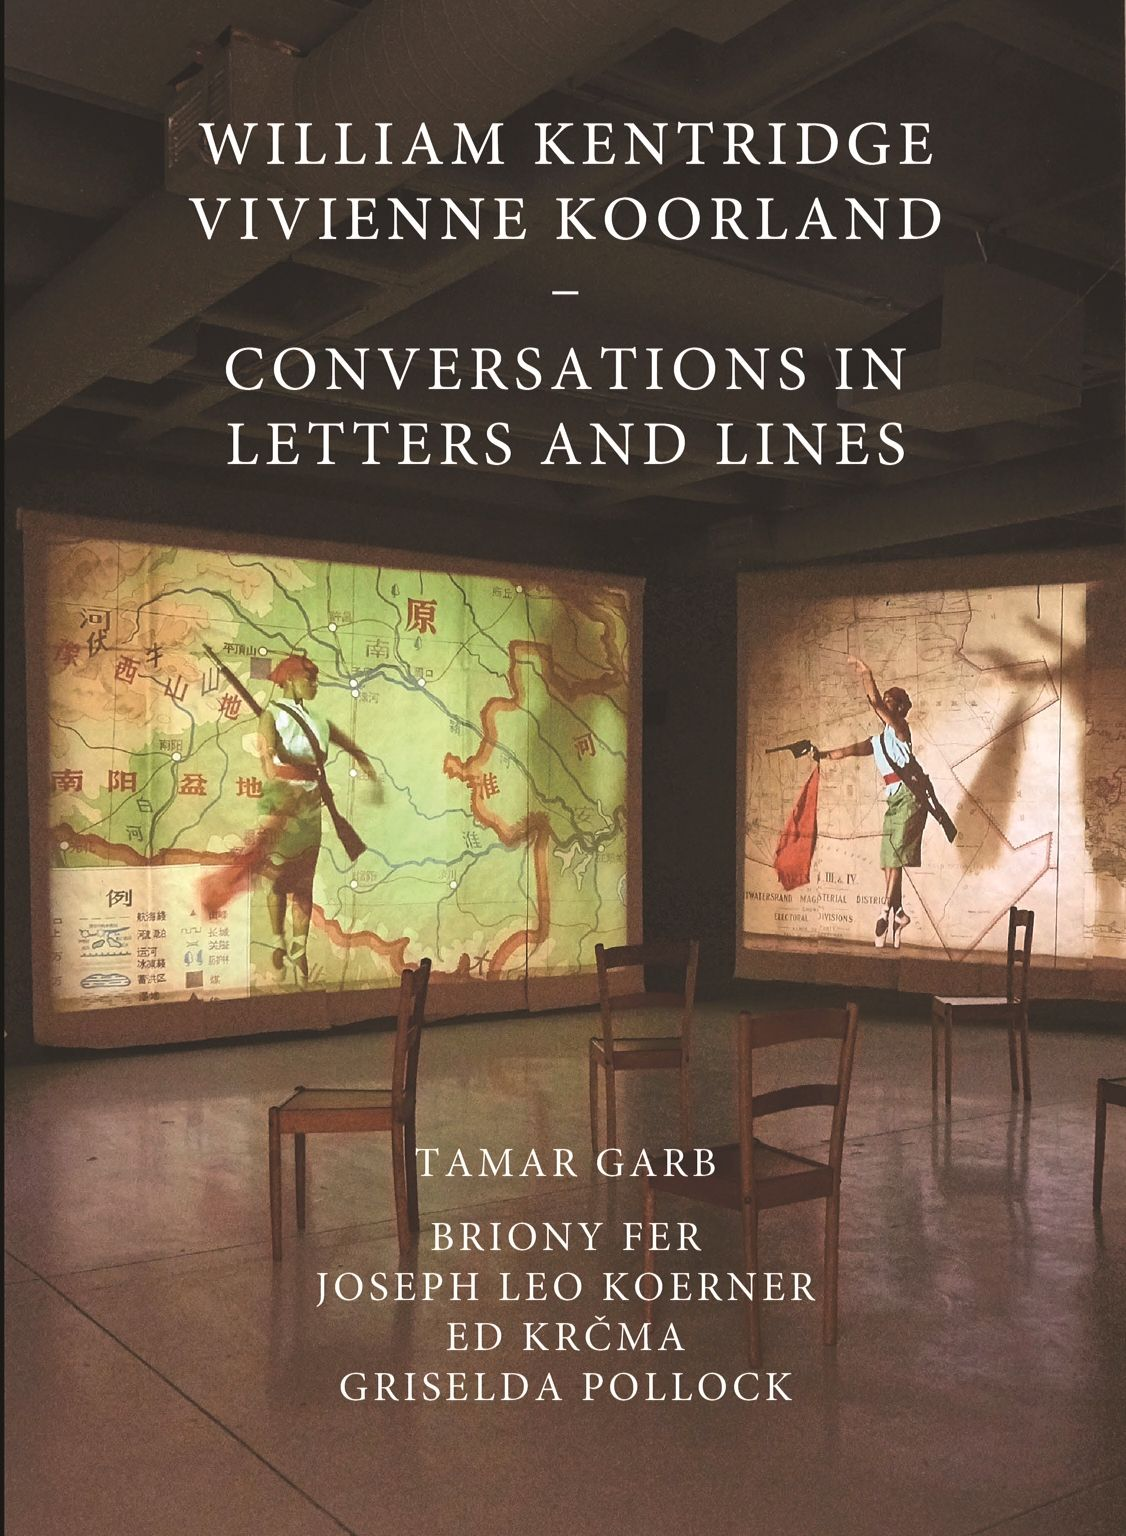 William Kentridge and Vivienne Koorland: Conversations in Letters and Lines